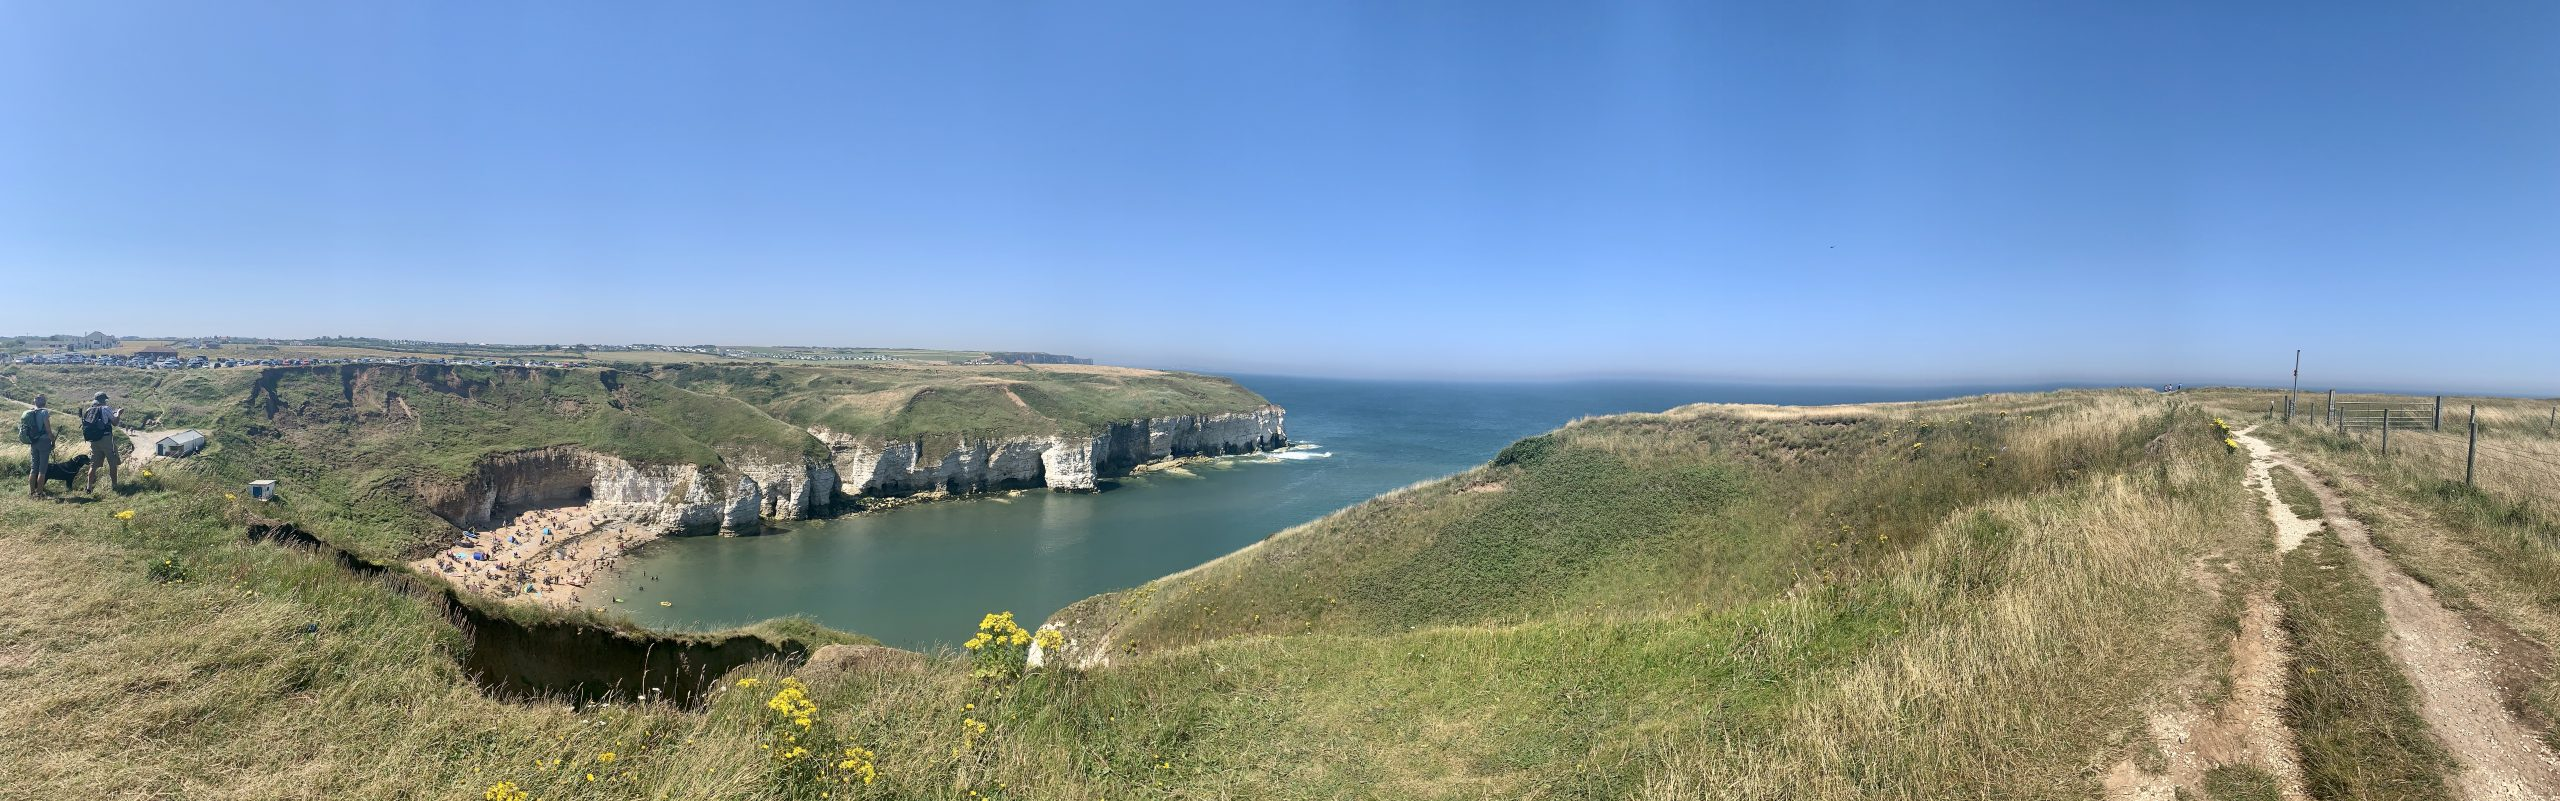 Panoramic view of Flamborough Head cliffs, blue sea with blue sky and green grass